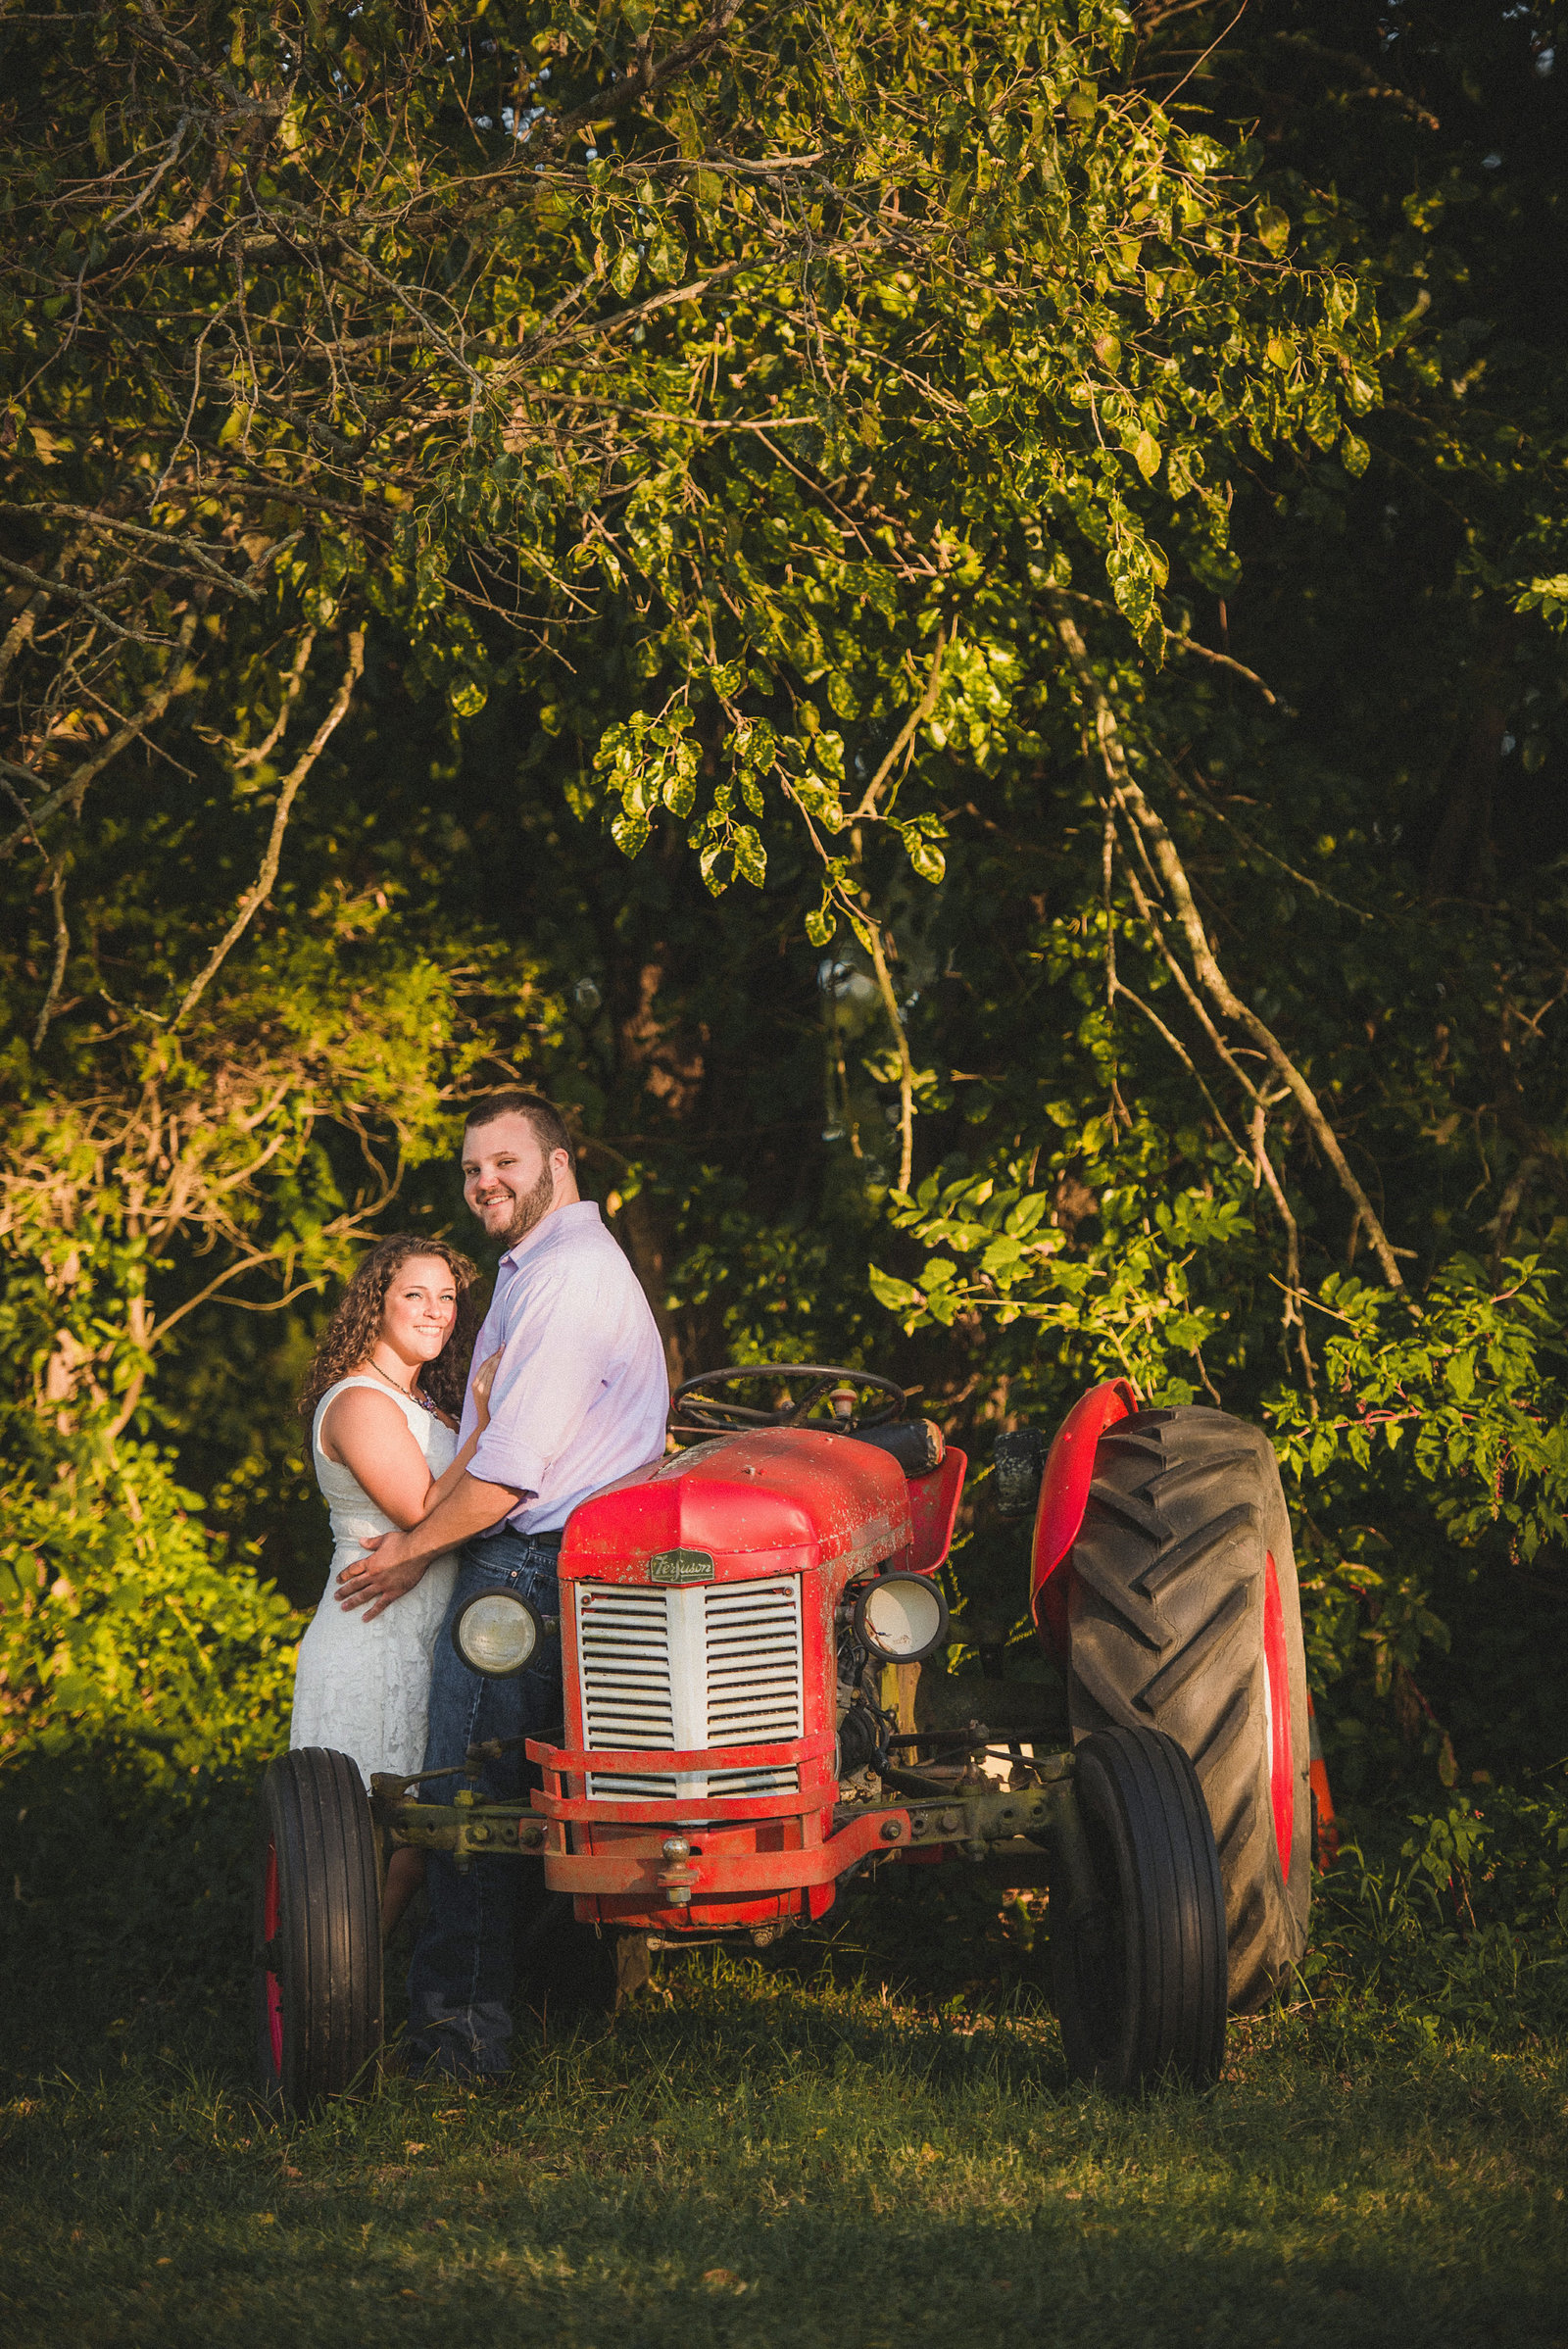 NJ_Rustic_Engagement_Photography064